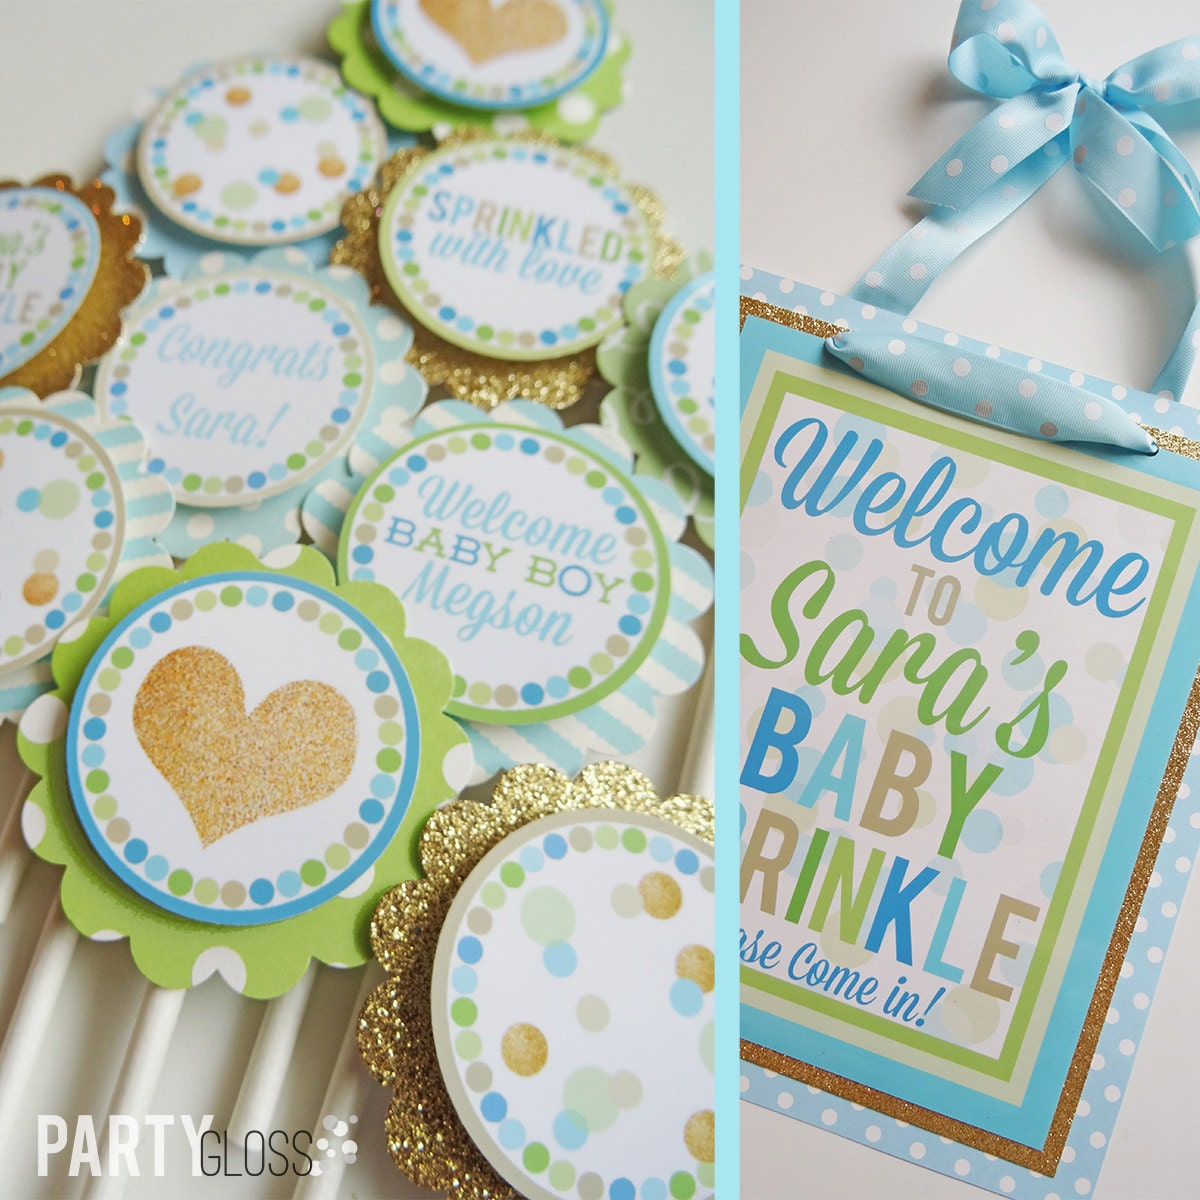 Sprinkled with love baby shower decorations package fully for Baby shower decoration packages